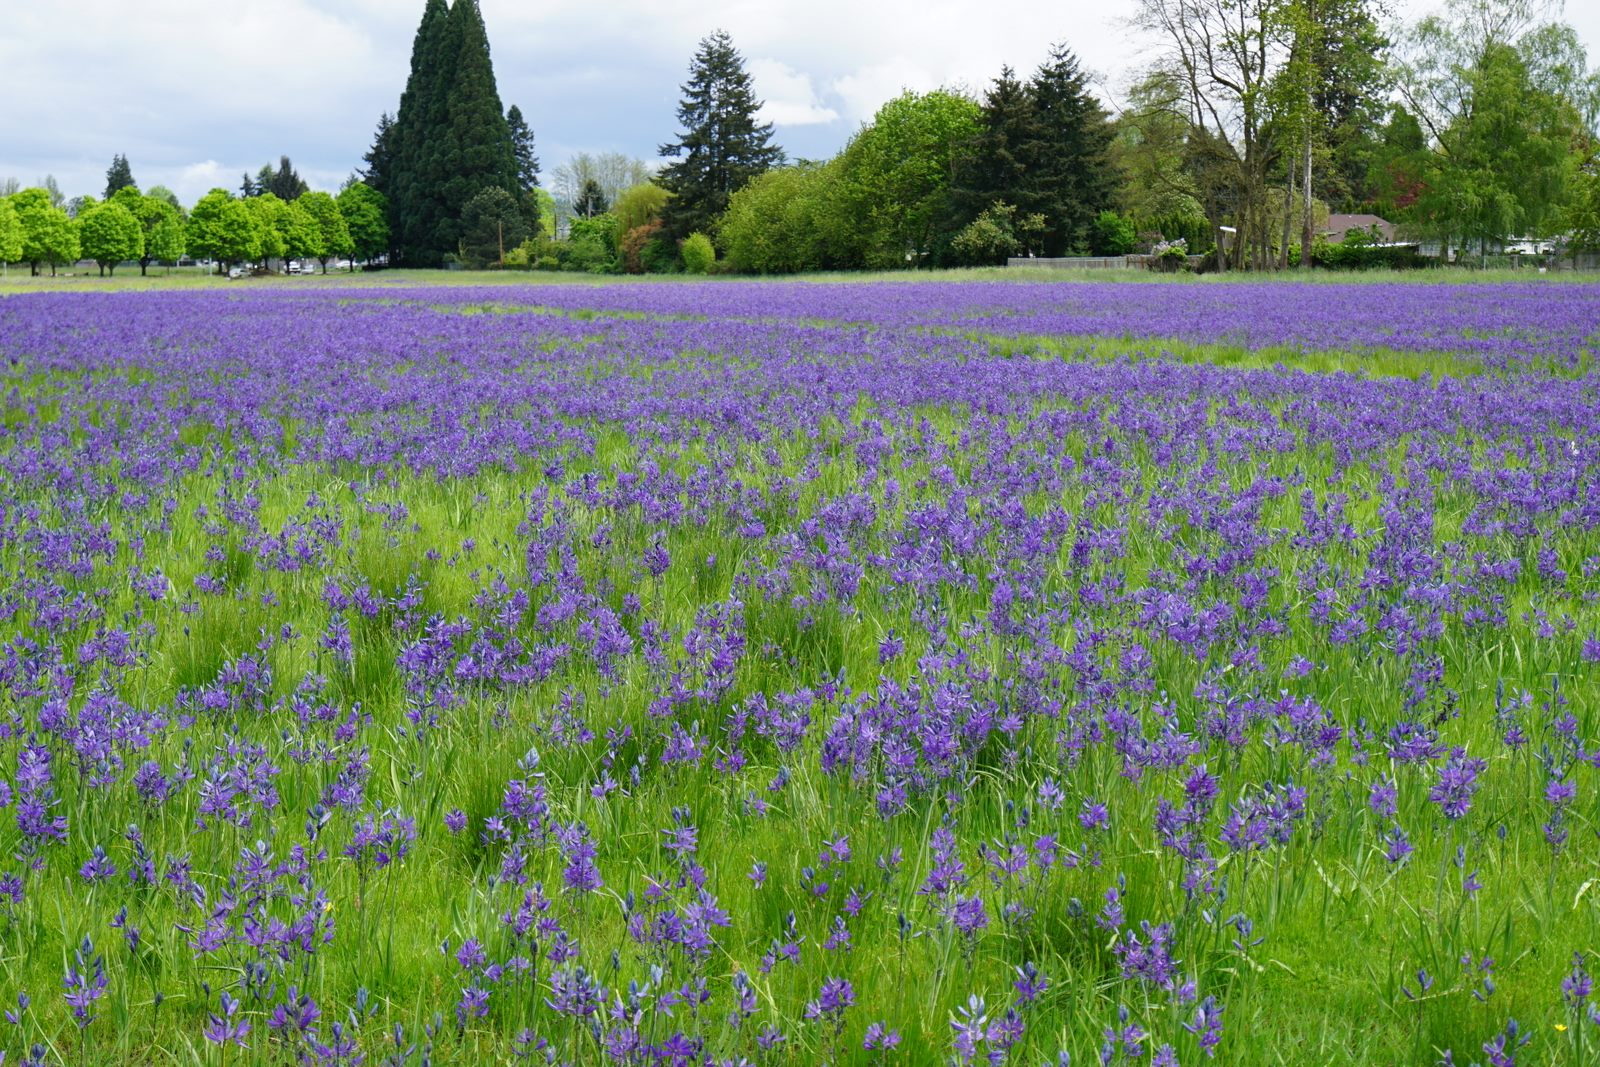 Stephanie Hazen observing the remarkable camas bloom happening now in the Willamette valley. It certainly would be wonderful to get an inventory of the visitors while the bloom continues into the next week.